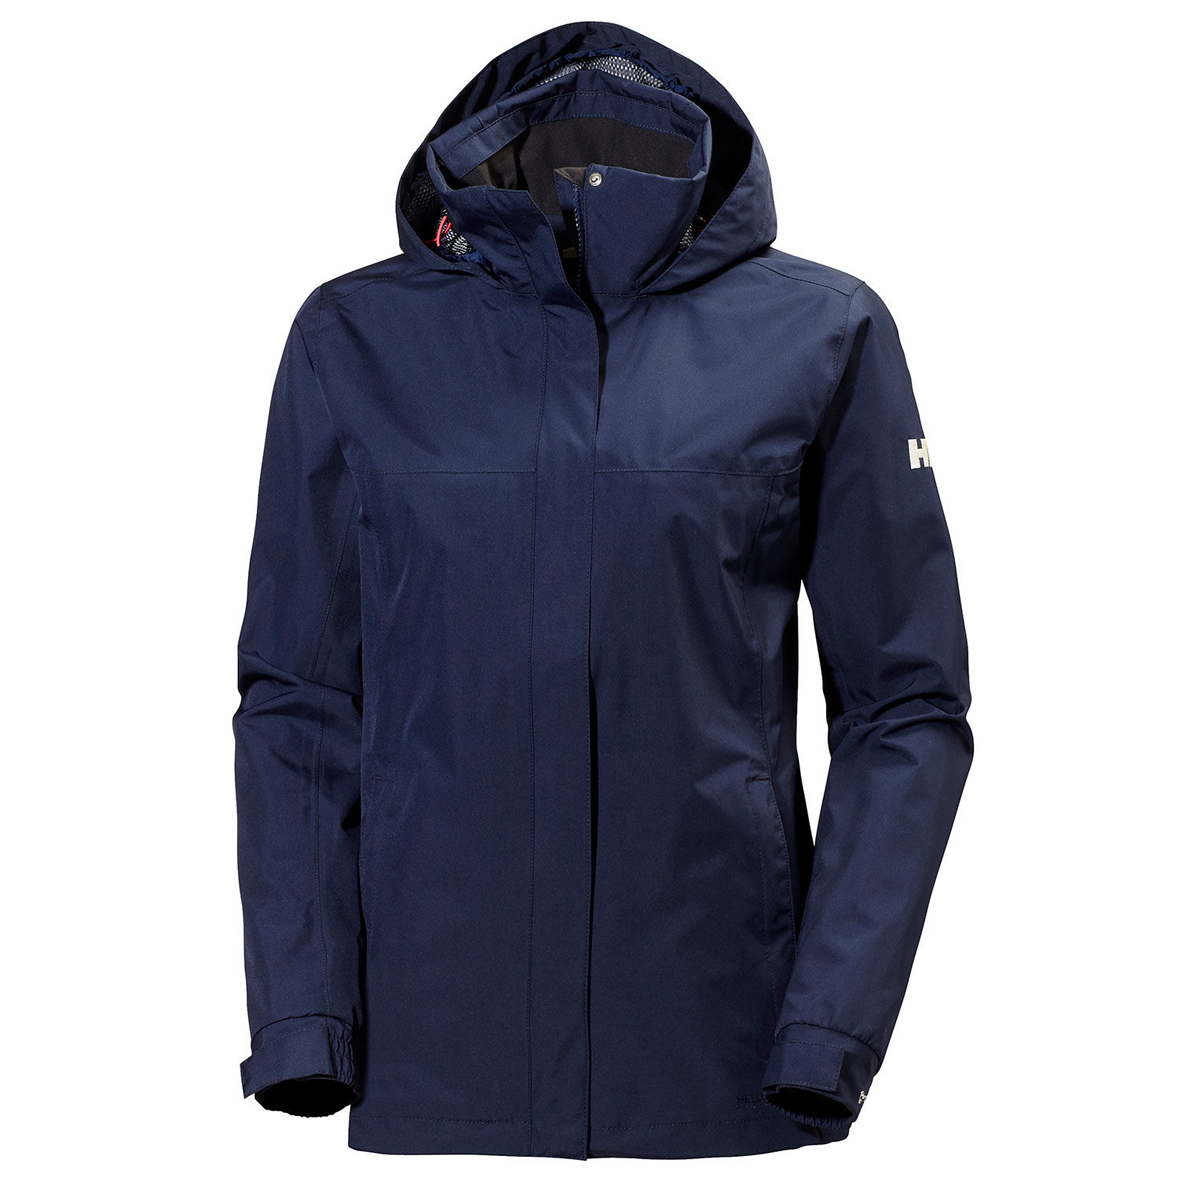 HELLY HANSEN W ADEN JACKET (62650)